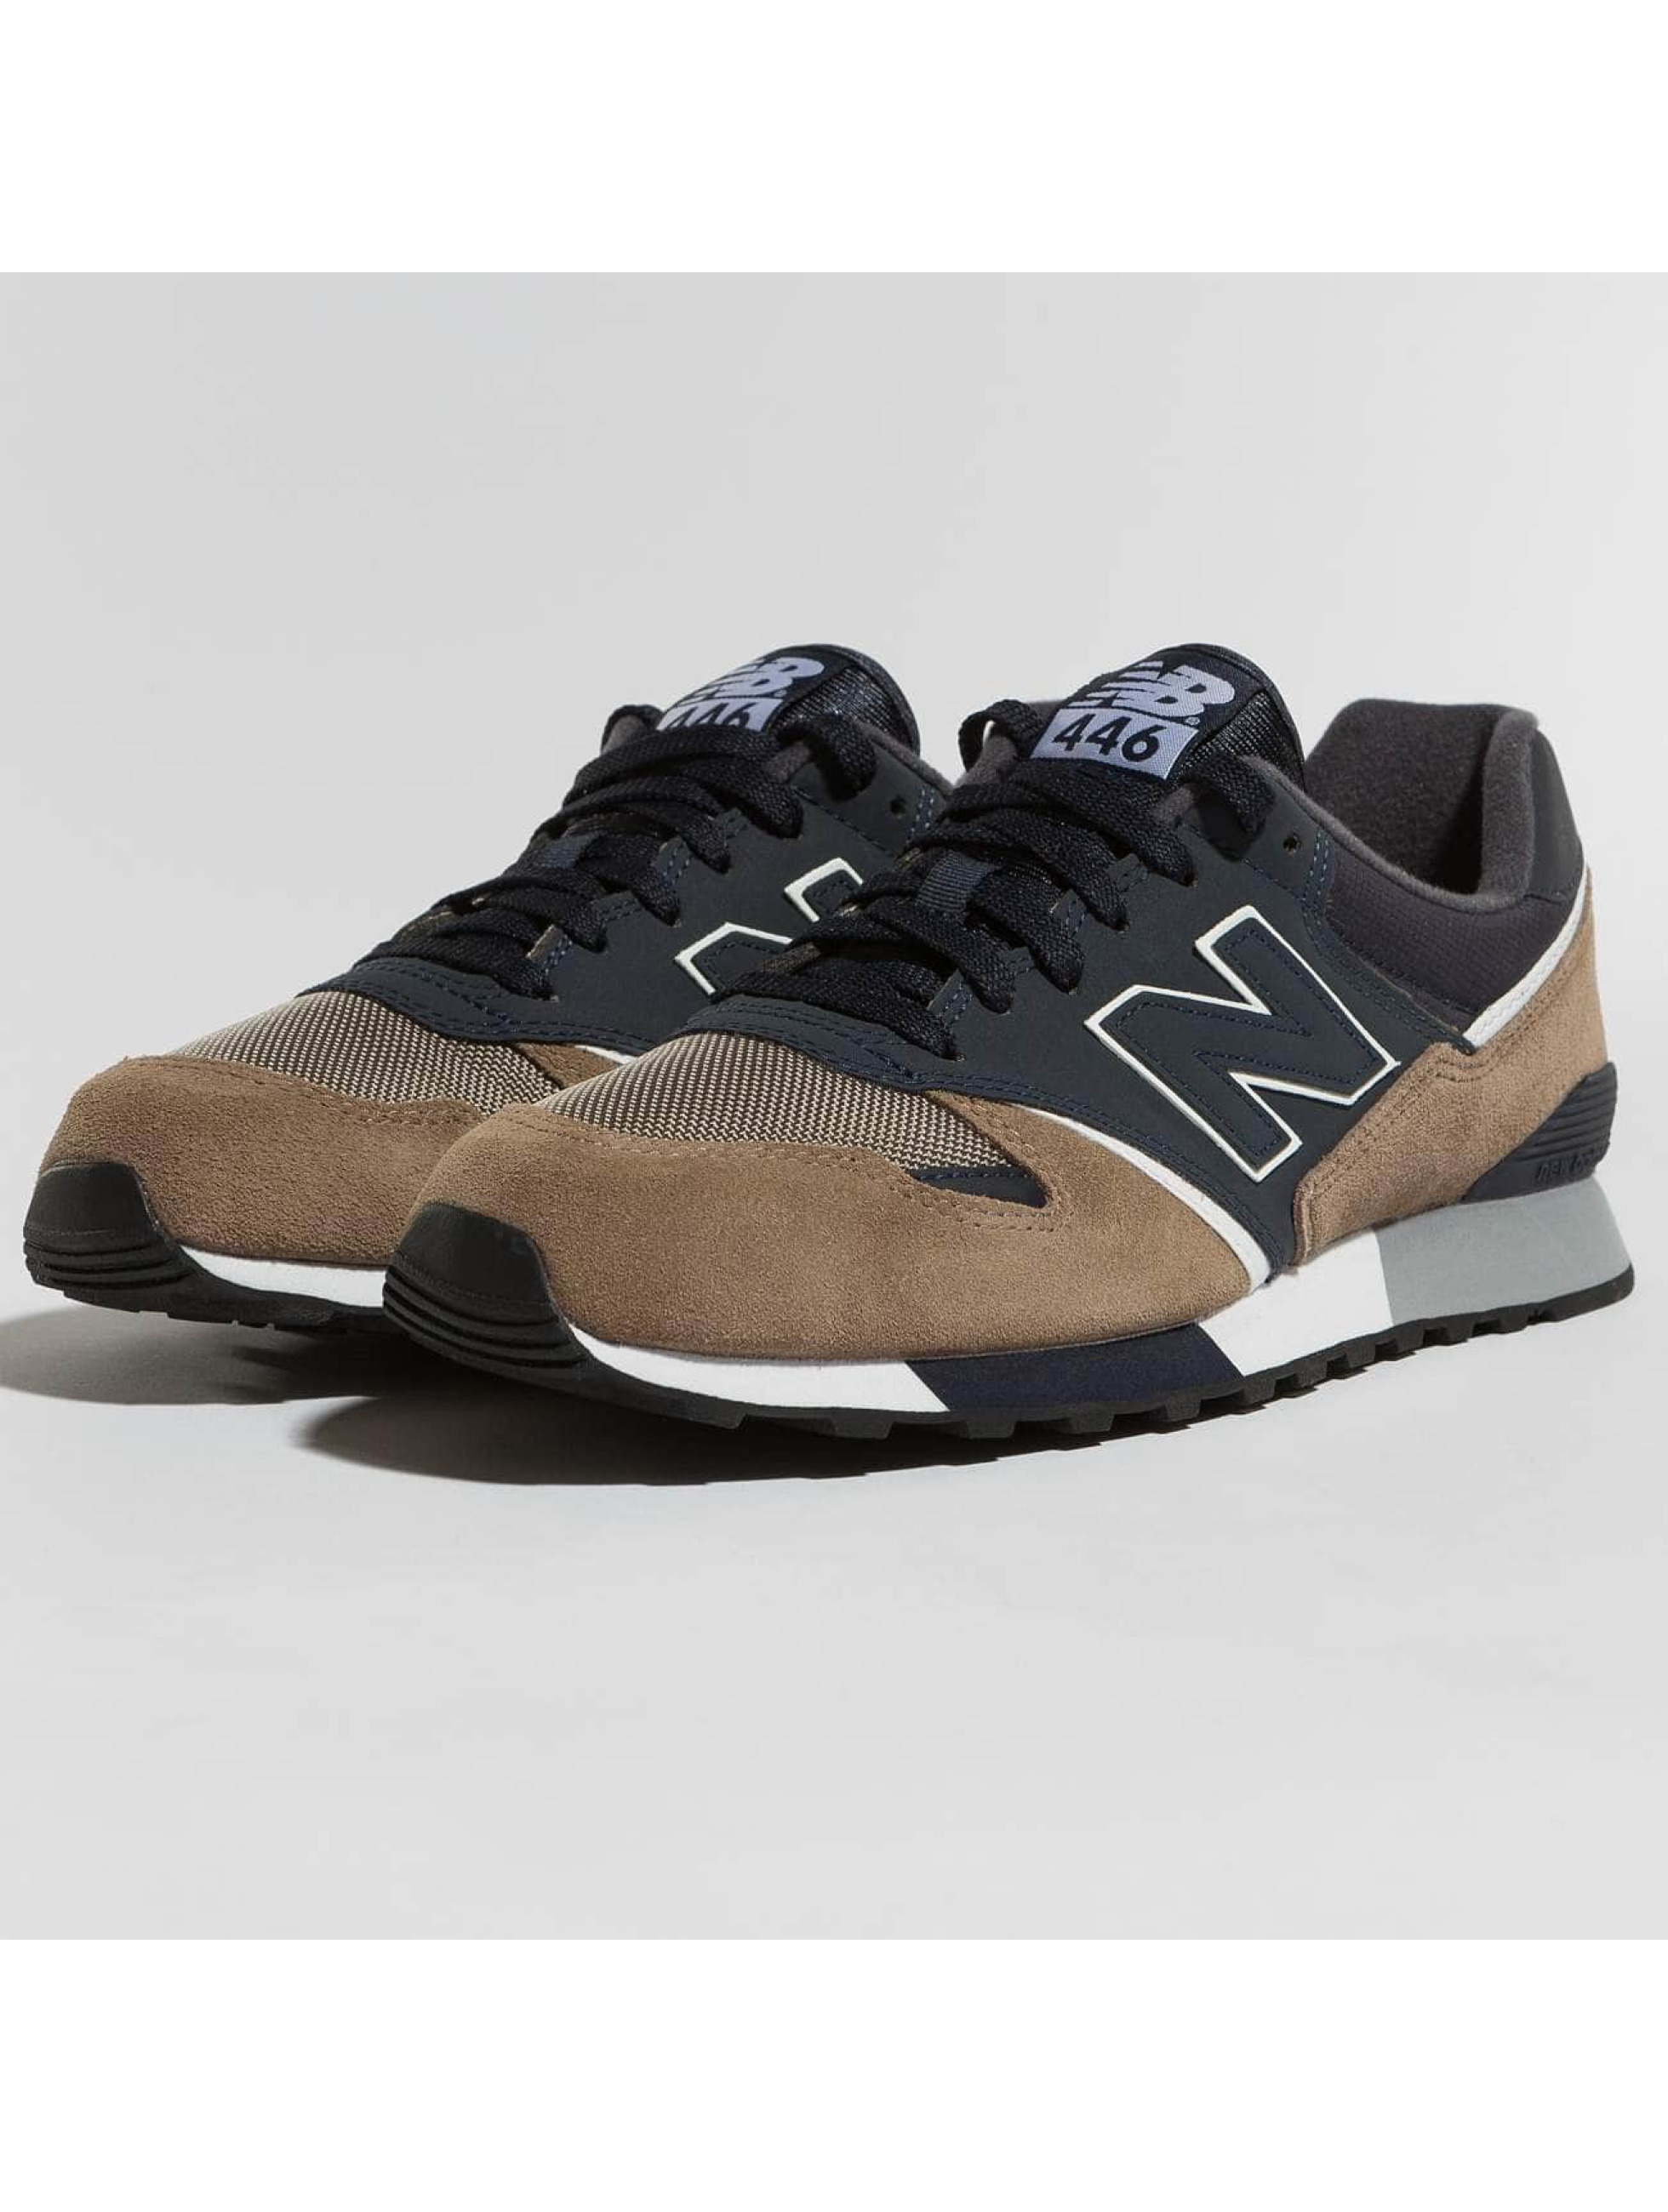 New Balance Sneakers U446 D CNW brown